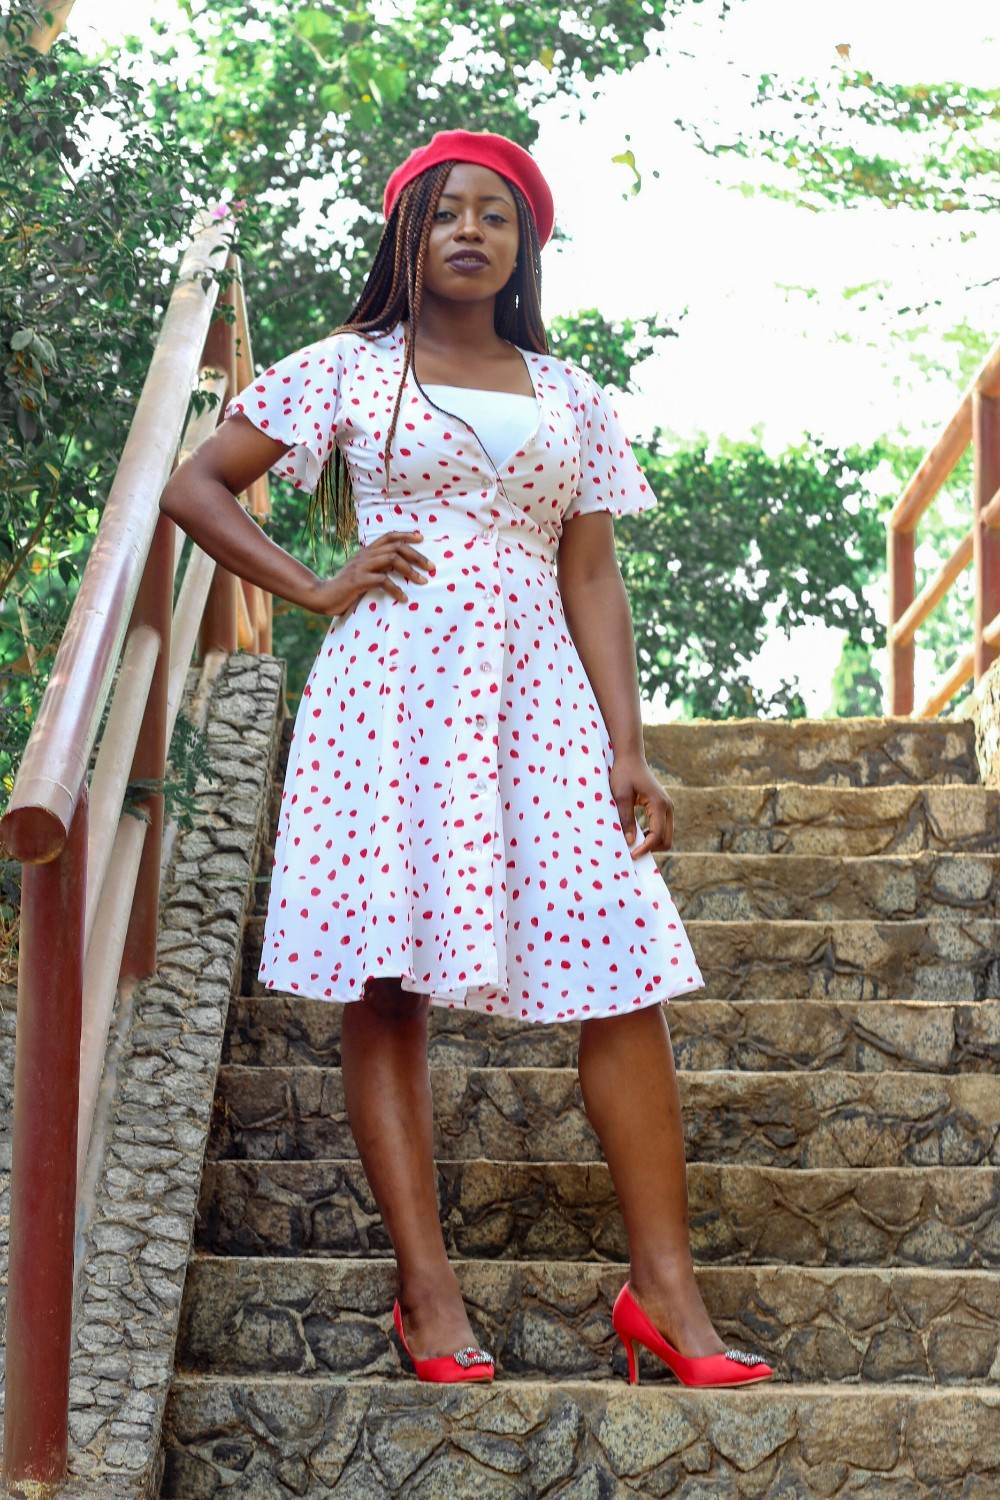 polkadot dress and red beret